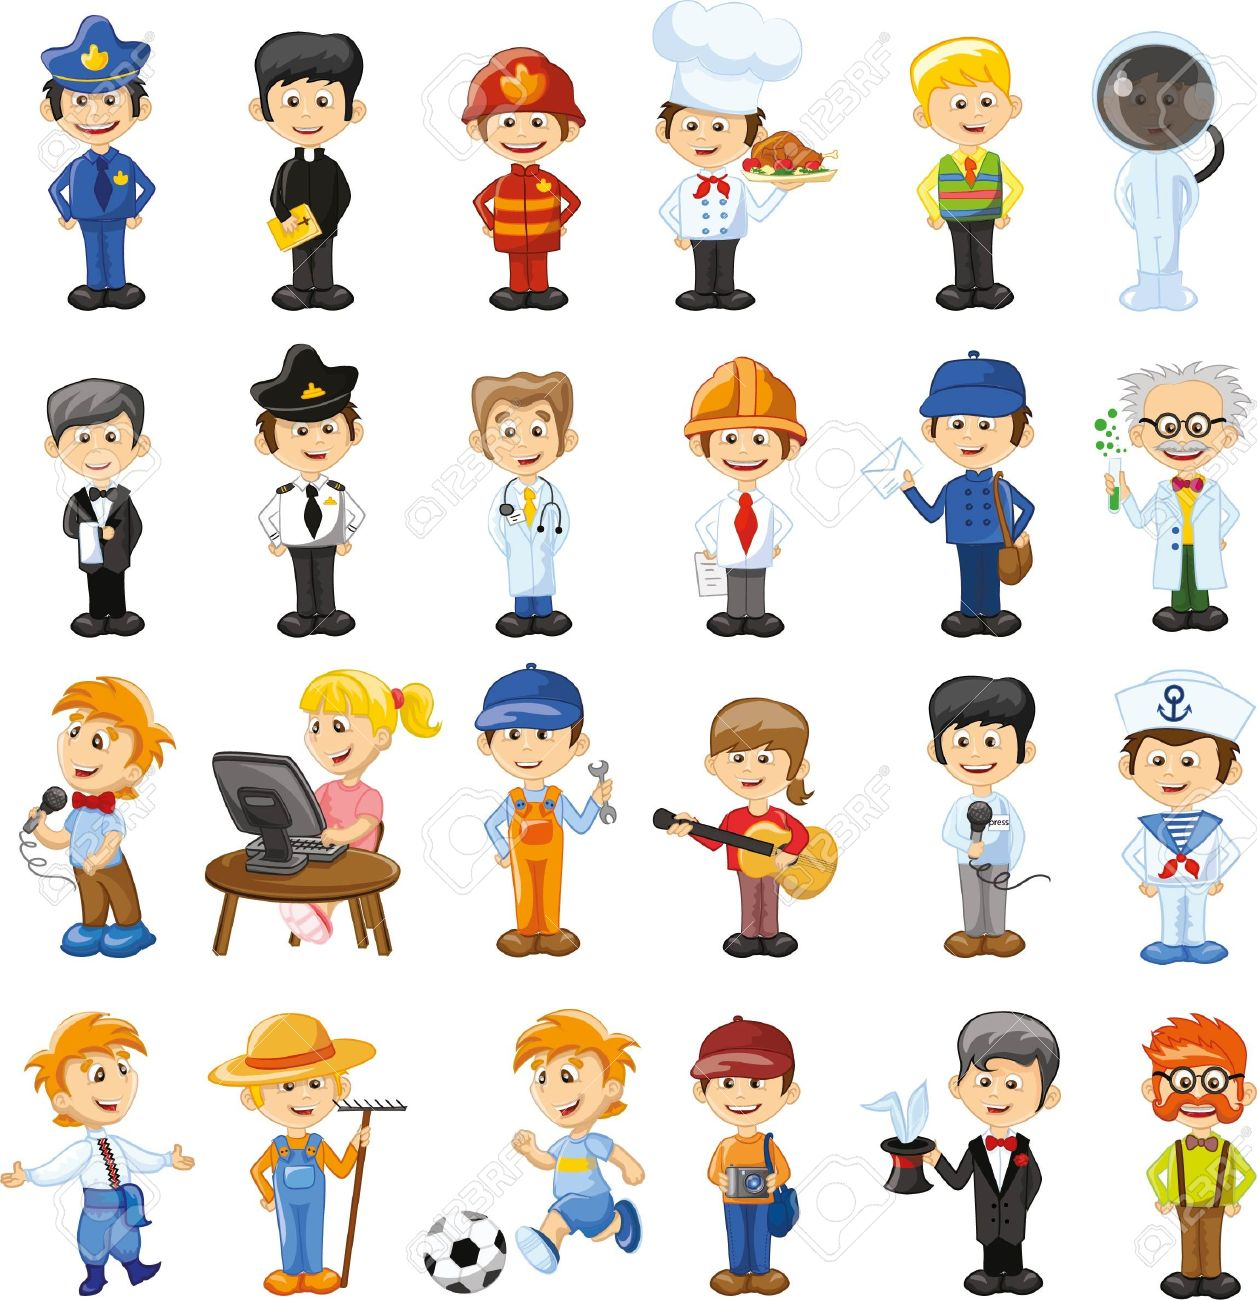 Cartoon vector characters of different professions - 44927010